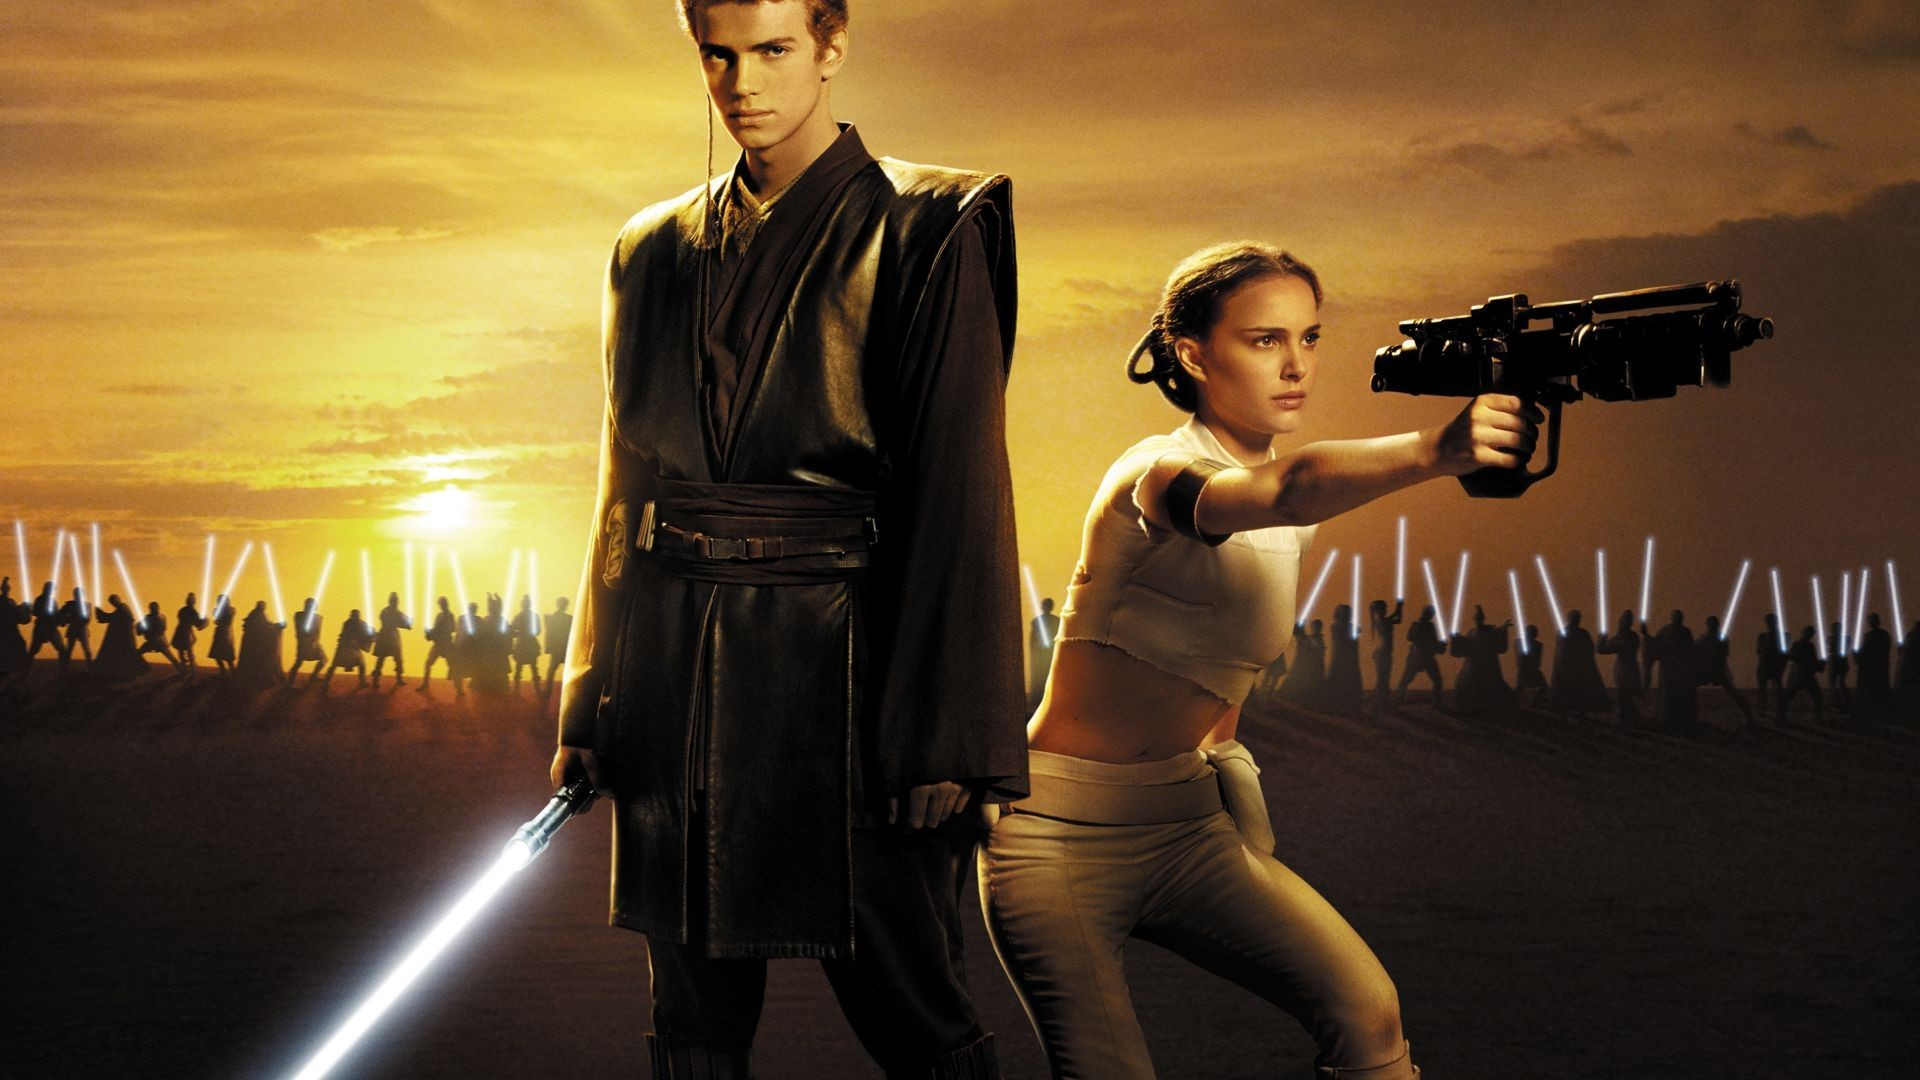 Star Wars Episode Ii Attack Of The Clones Hd Wallpaper Background Image 1920x1080 Id 339225 Wallpaper Abyss